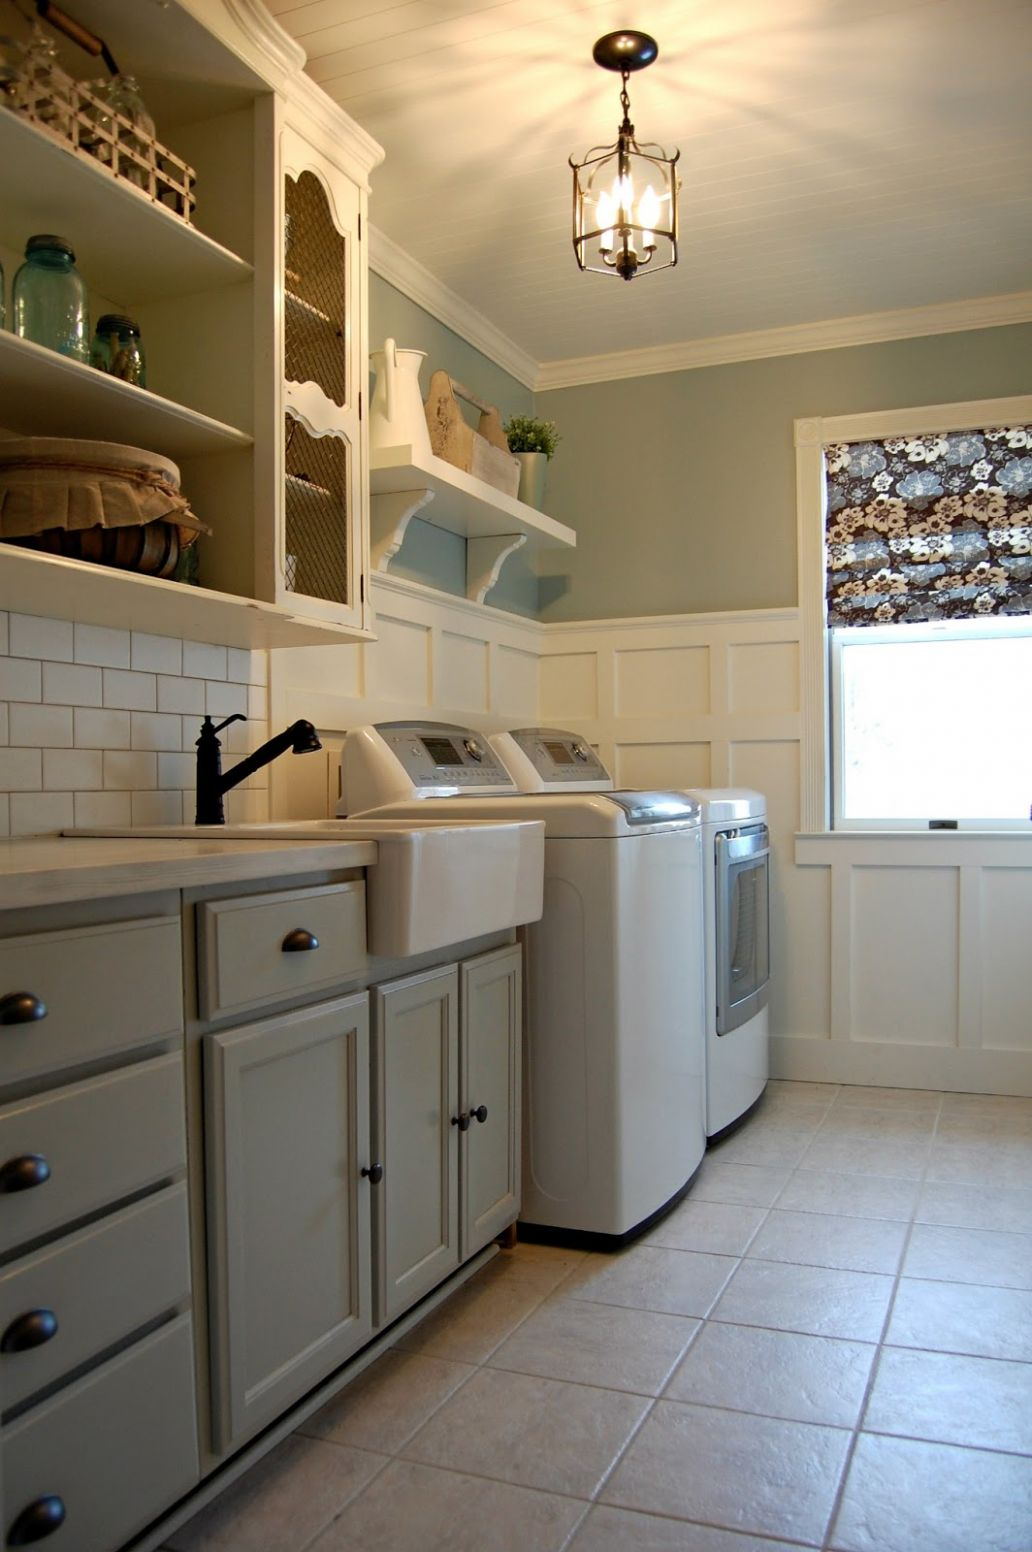 Laundry Room Paint Colors Home Decoration Club Cabinet Laundry ..